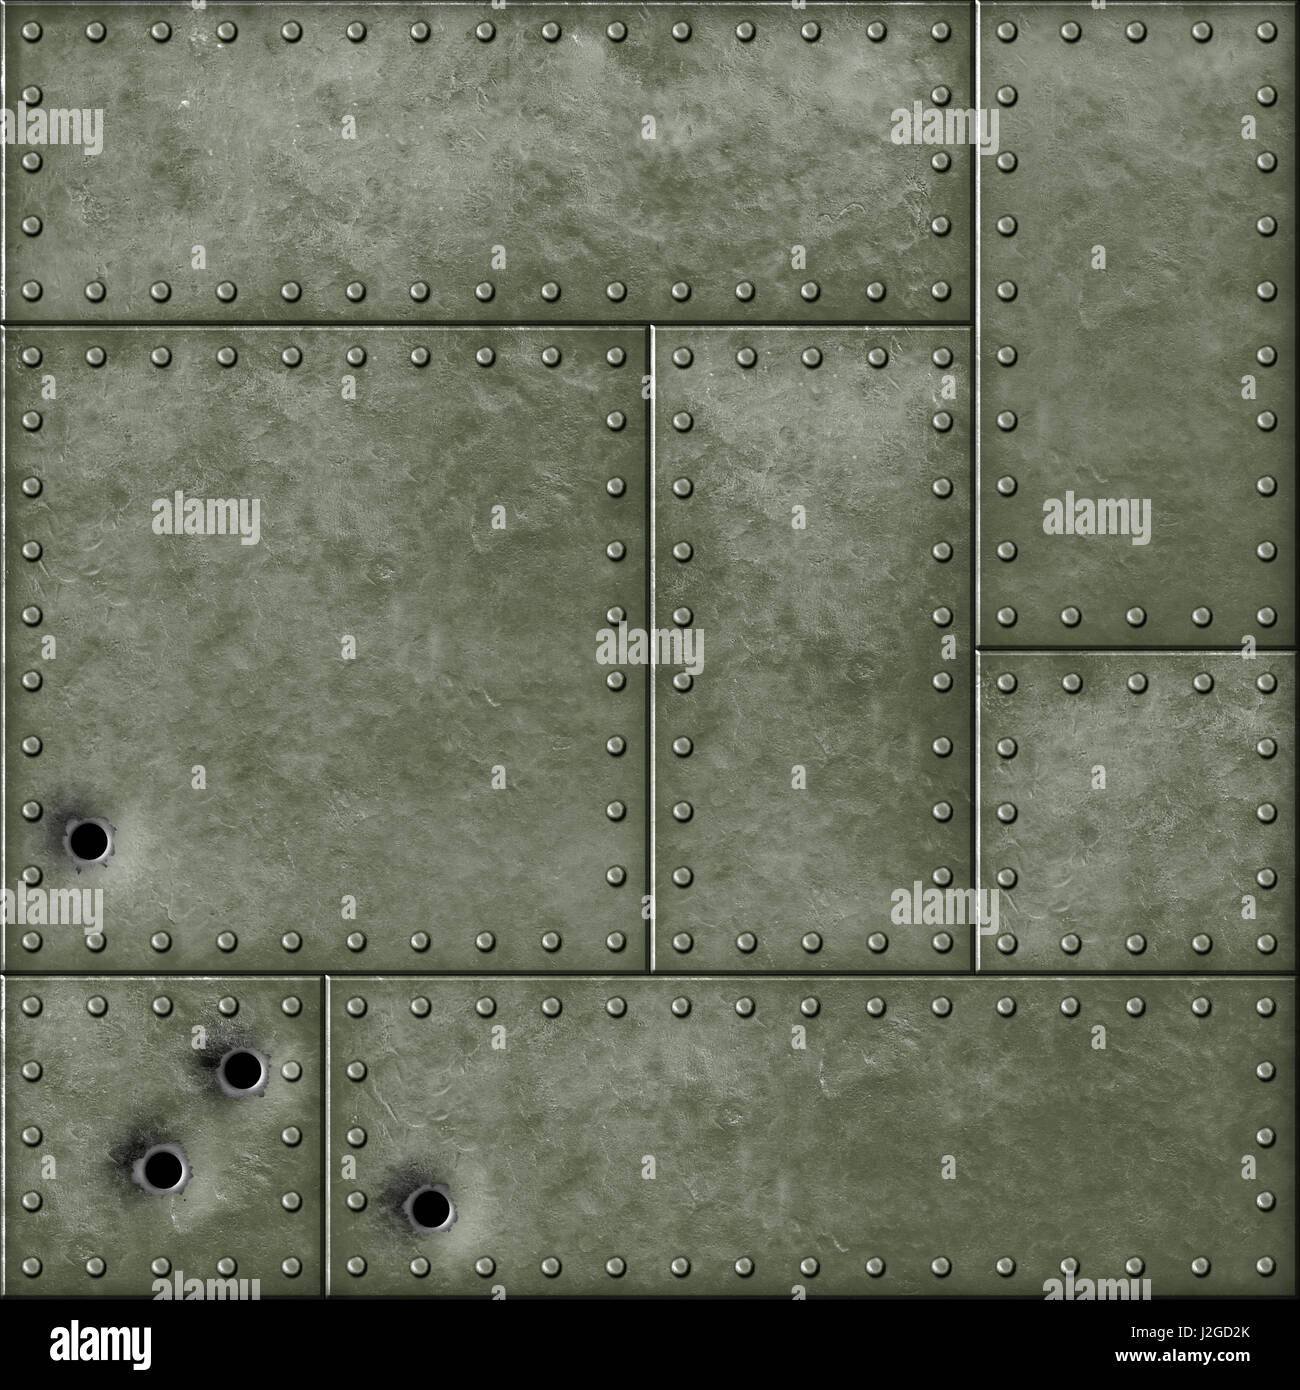 Military Metal Plate And Bullet Holes 3d Illustration Stock